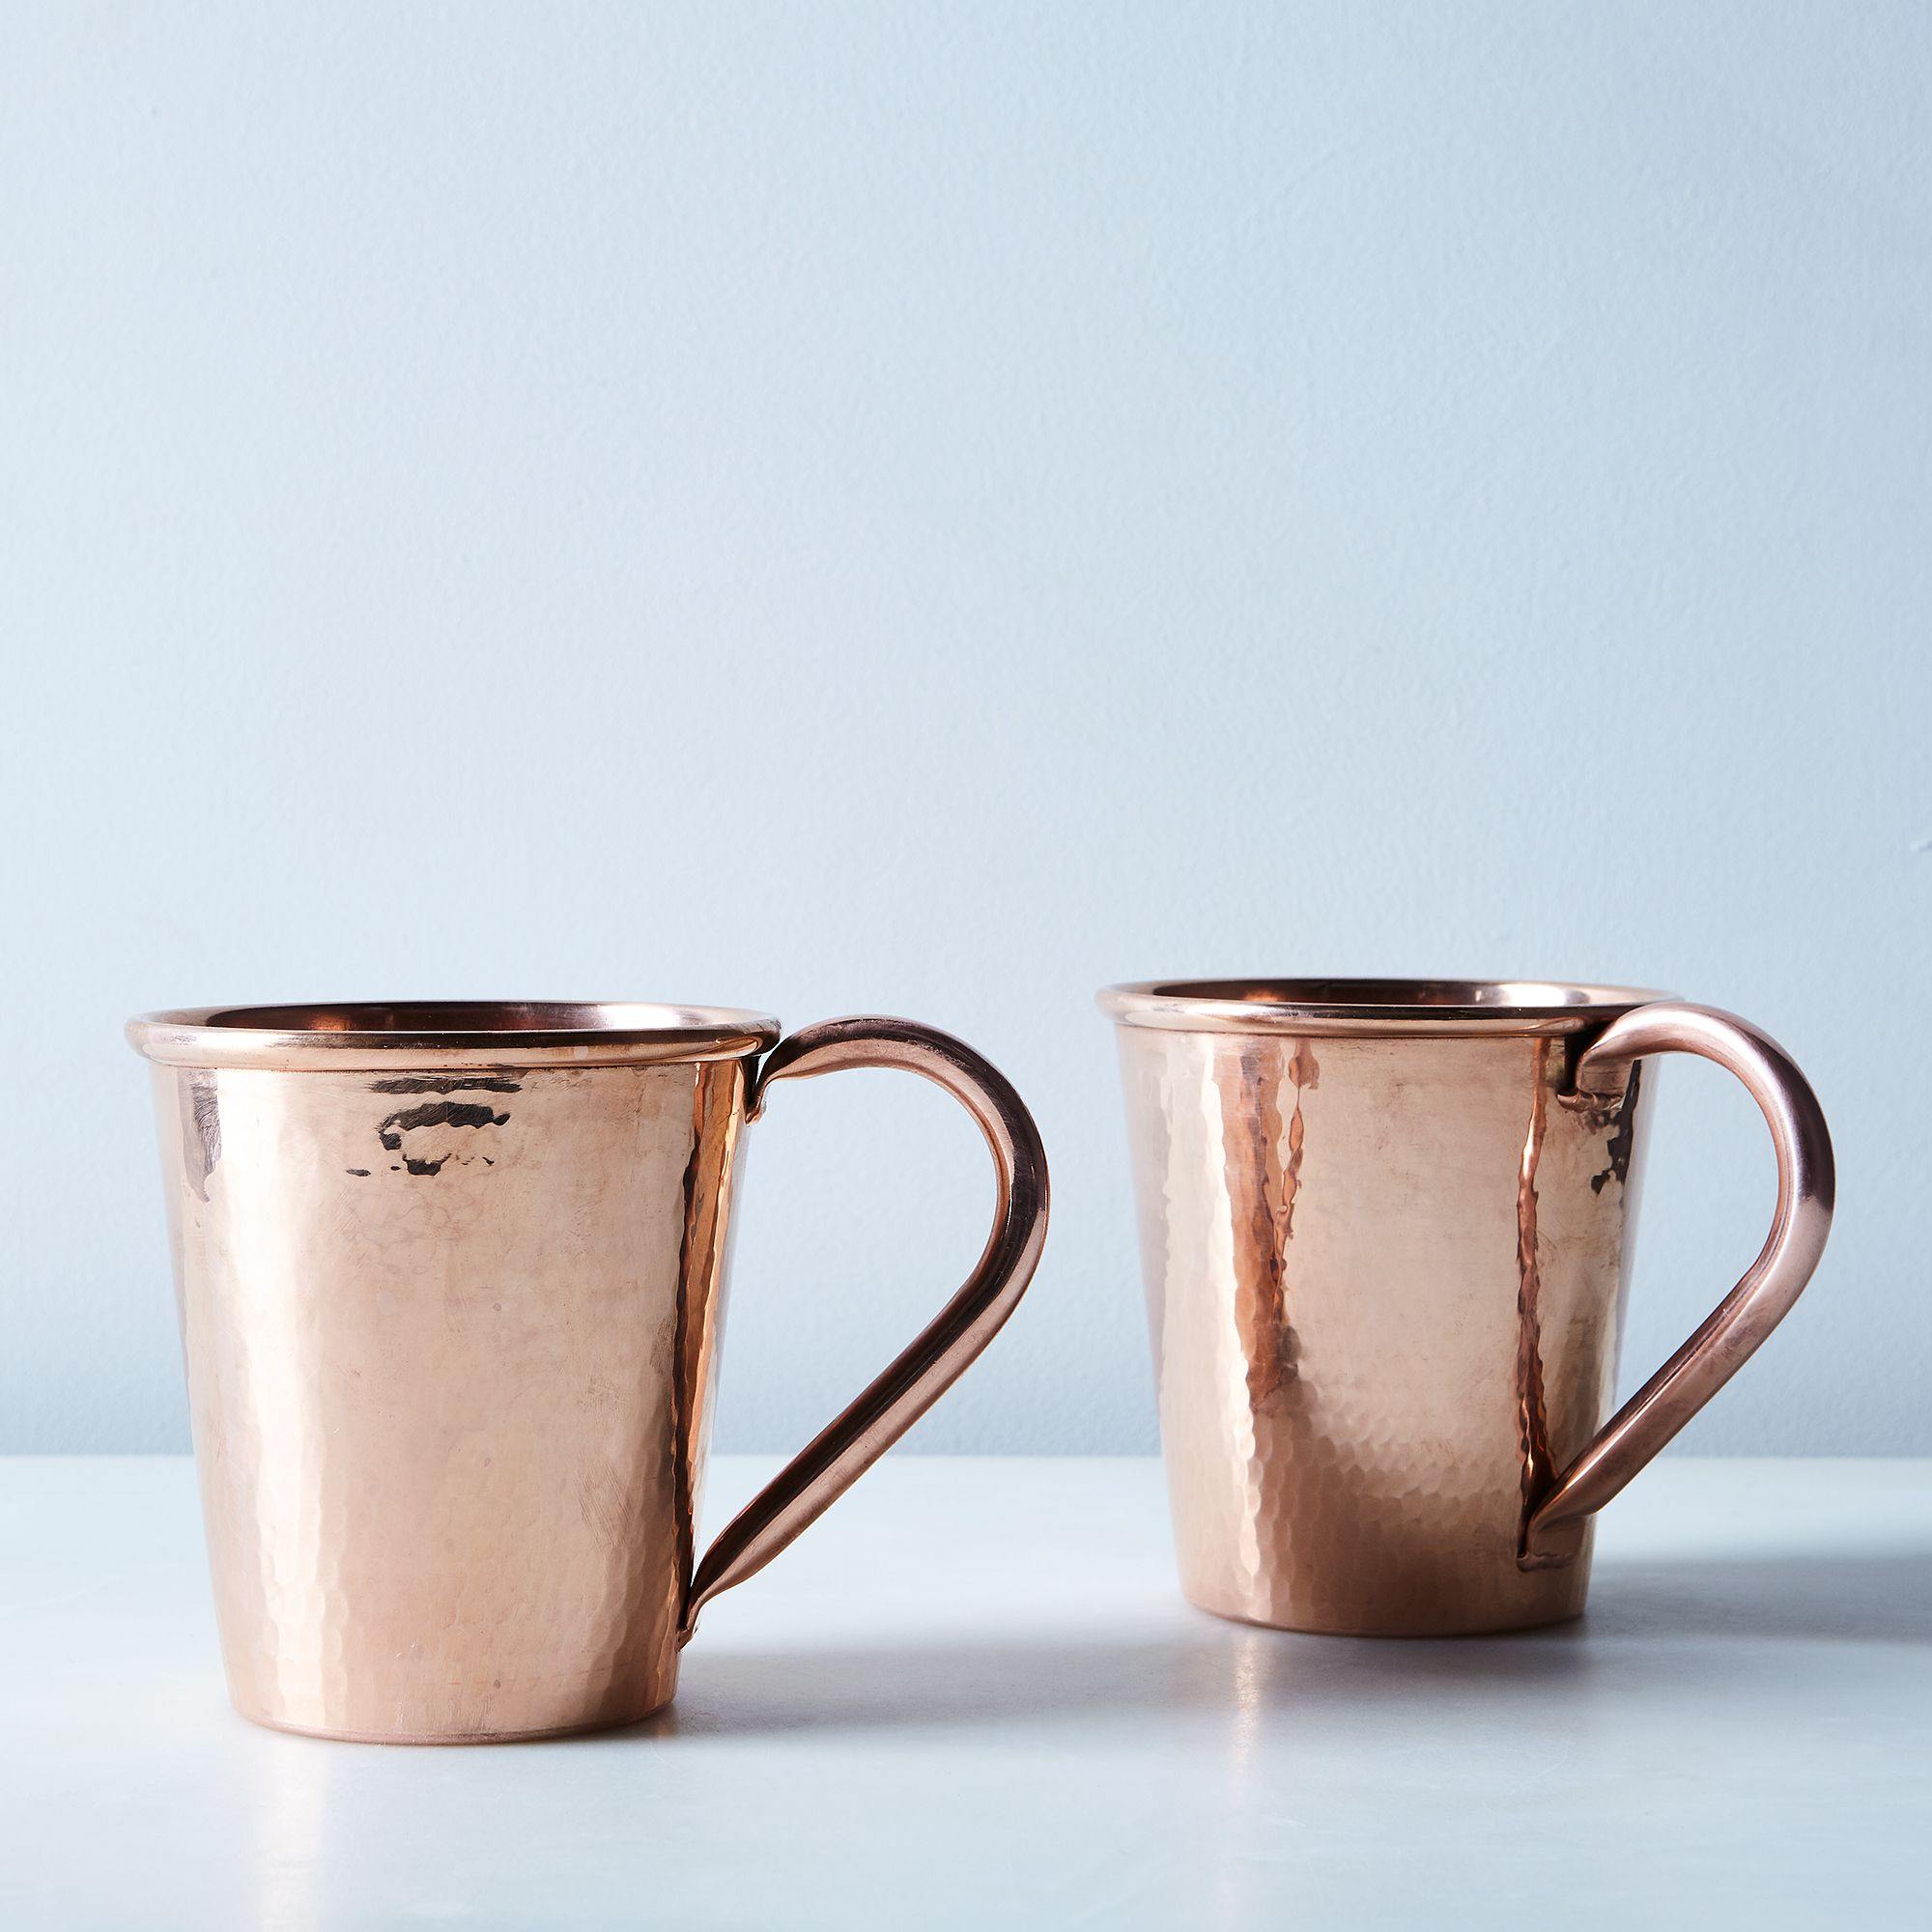 95374a7f ac10 41c3 8129 c01ffcbffd00  2016 1209 sertodo copper 18oz moscow mule copper handle set of 2 silo rocky luten 170